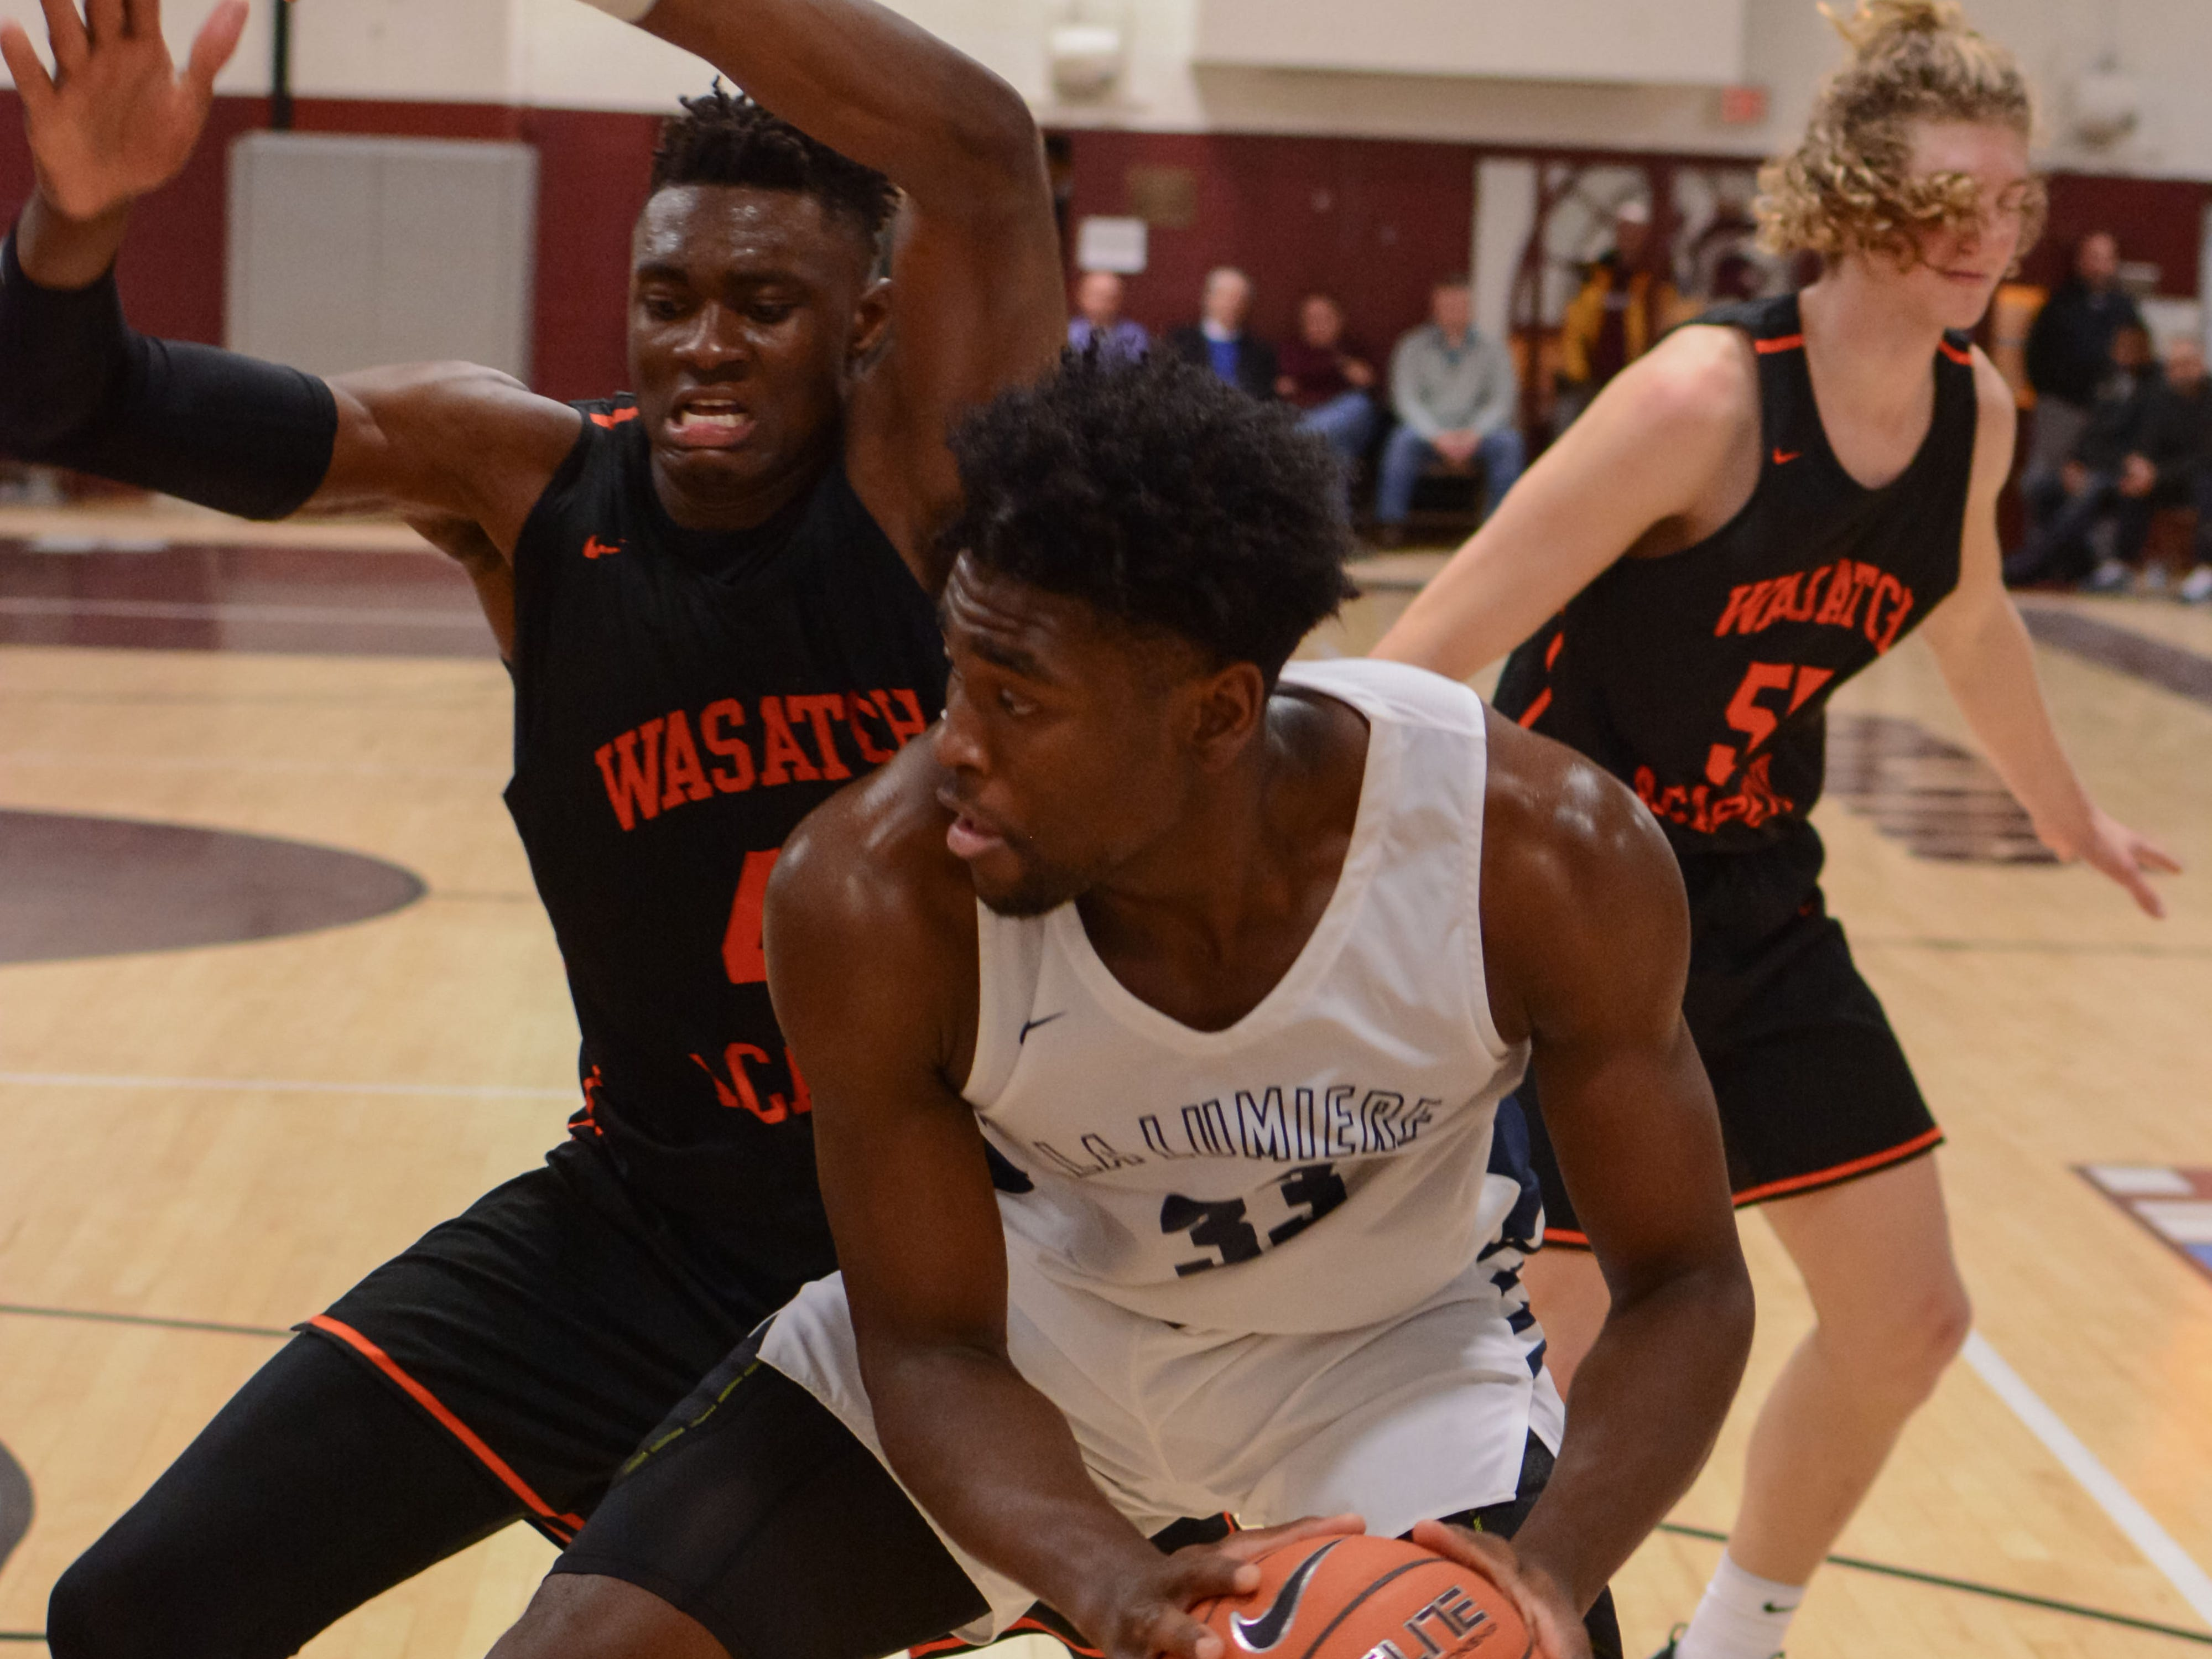 Former McQuaid standout Isaiah Stewart, now of the La Lumiere School, makes a move to the basket during a game against Wasatch Academy of Utah.